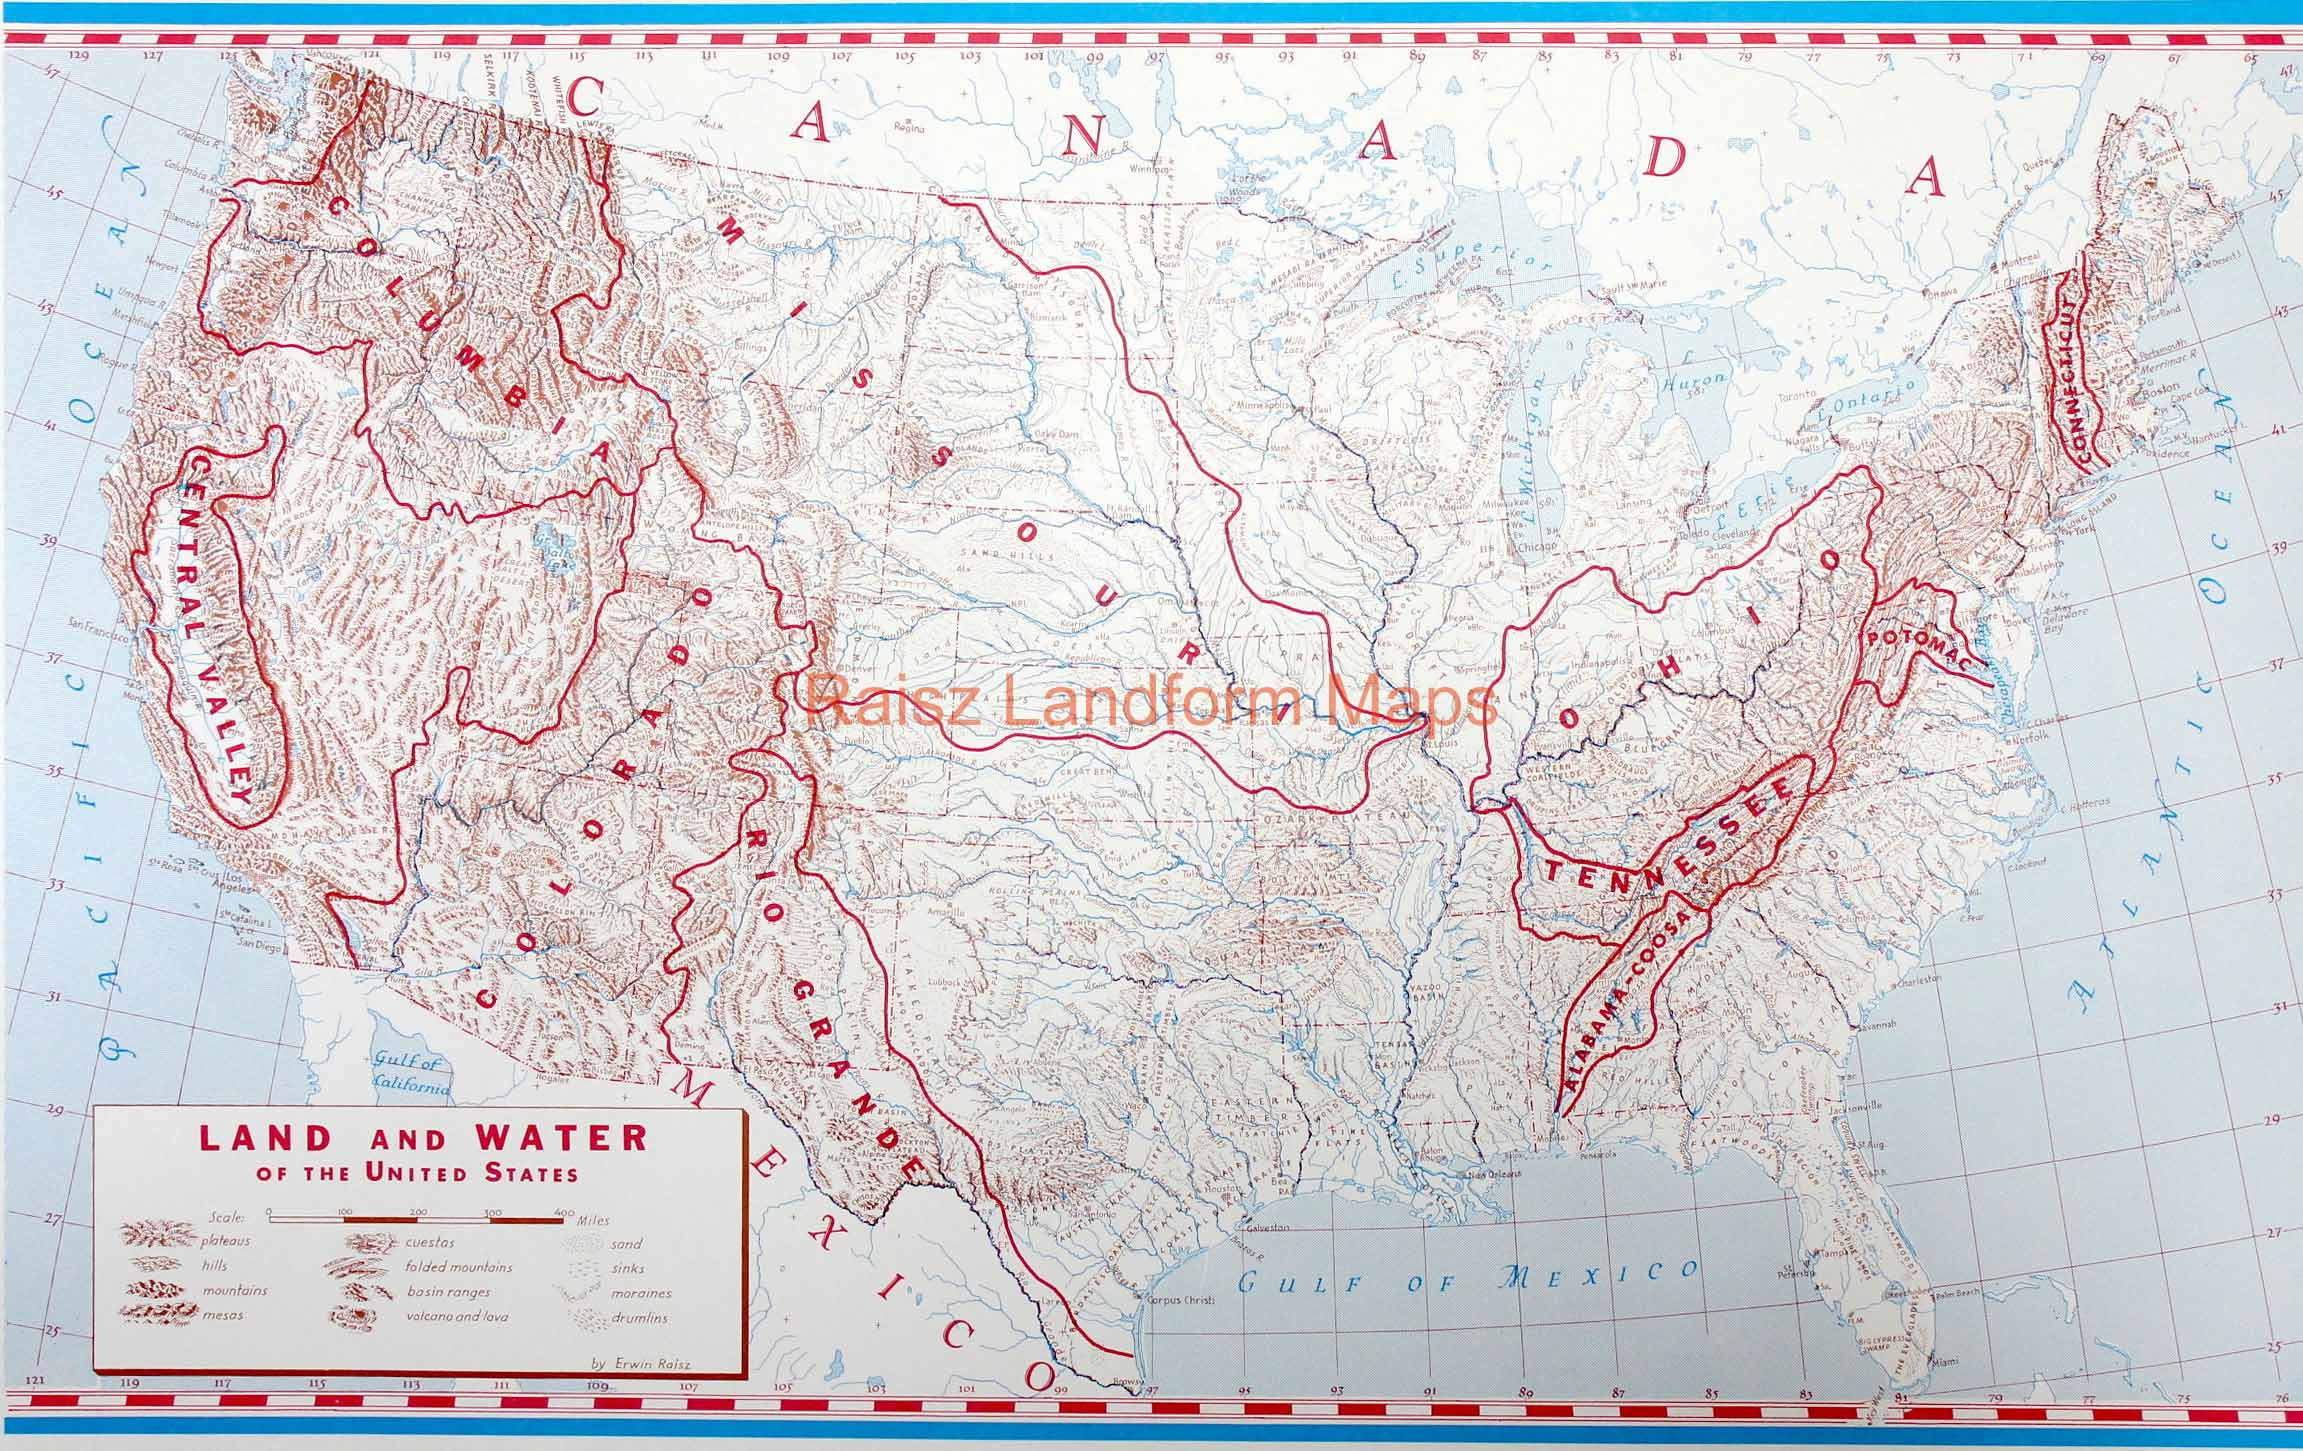 Land And Water Of The United States Raisz Landform Maps